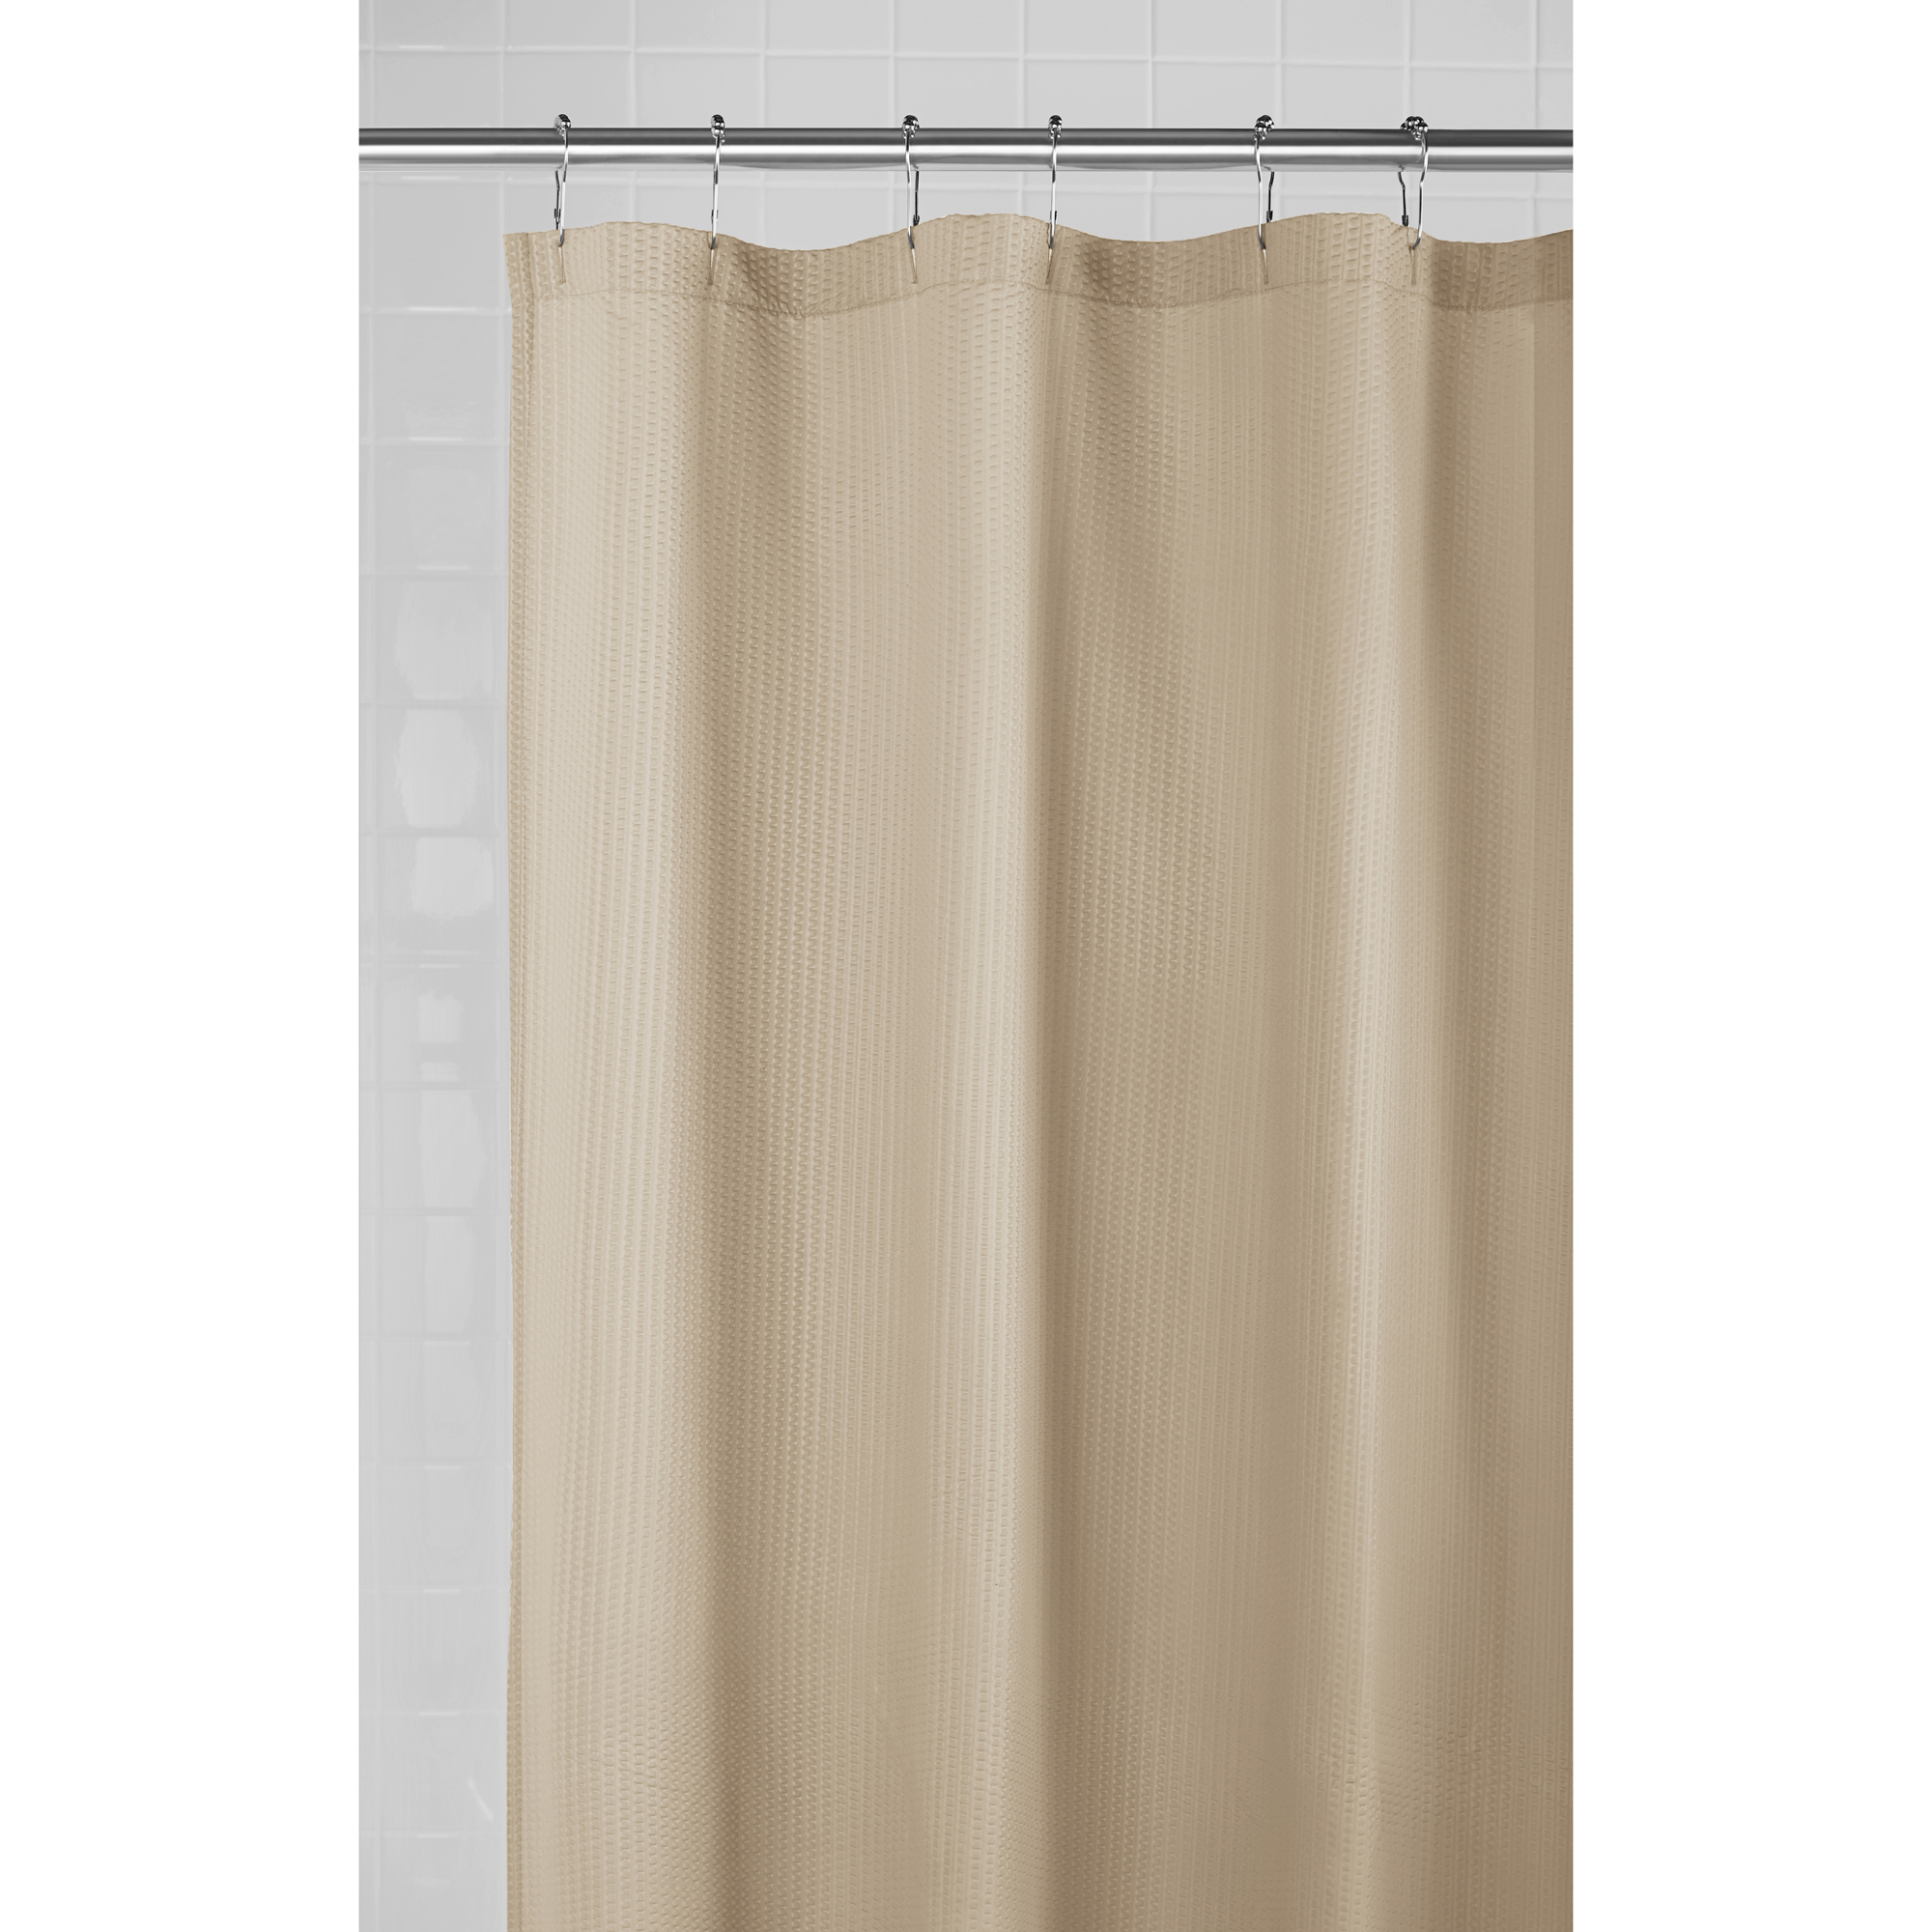 Mainstays Embossed Fabric Shower Liner 1 Each